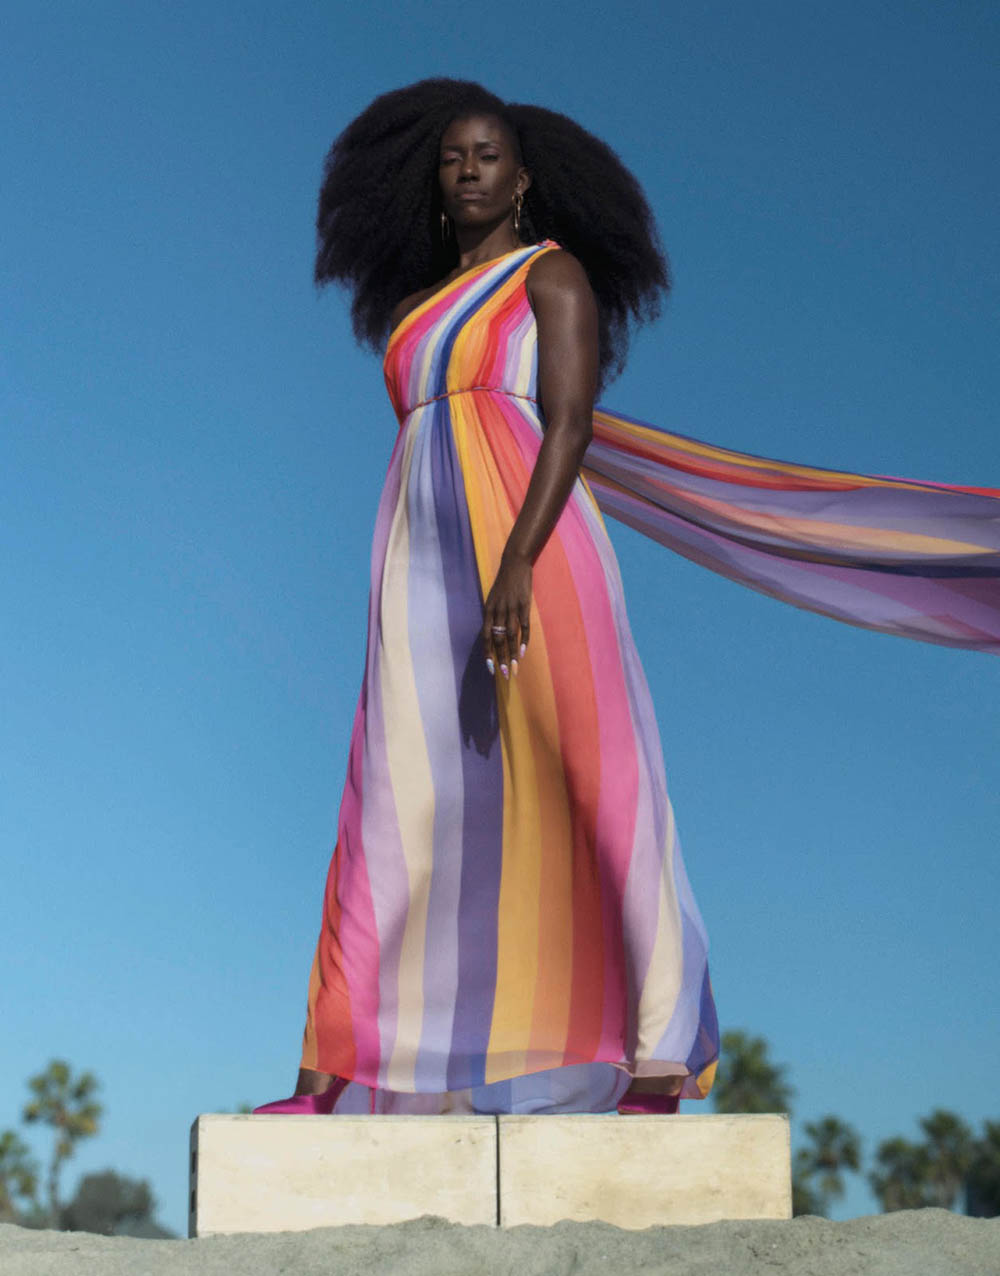 Bozoma Saint John by Luke Gilford for Porter Magazine Summer 2019